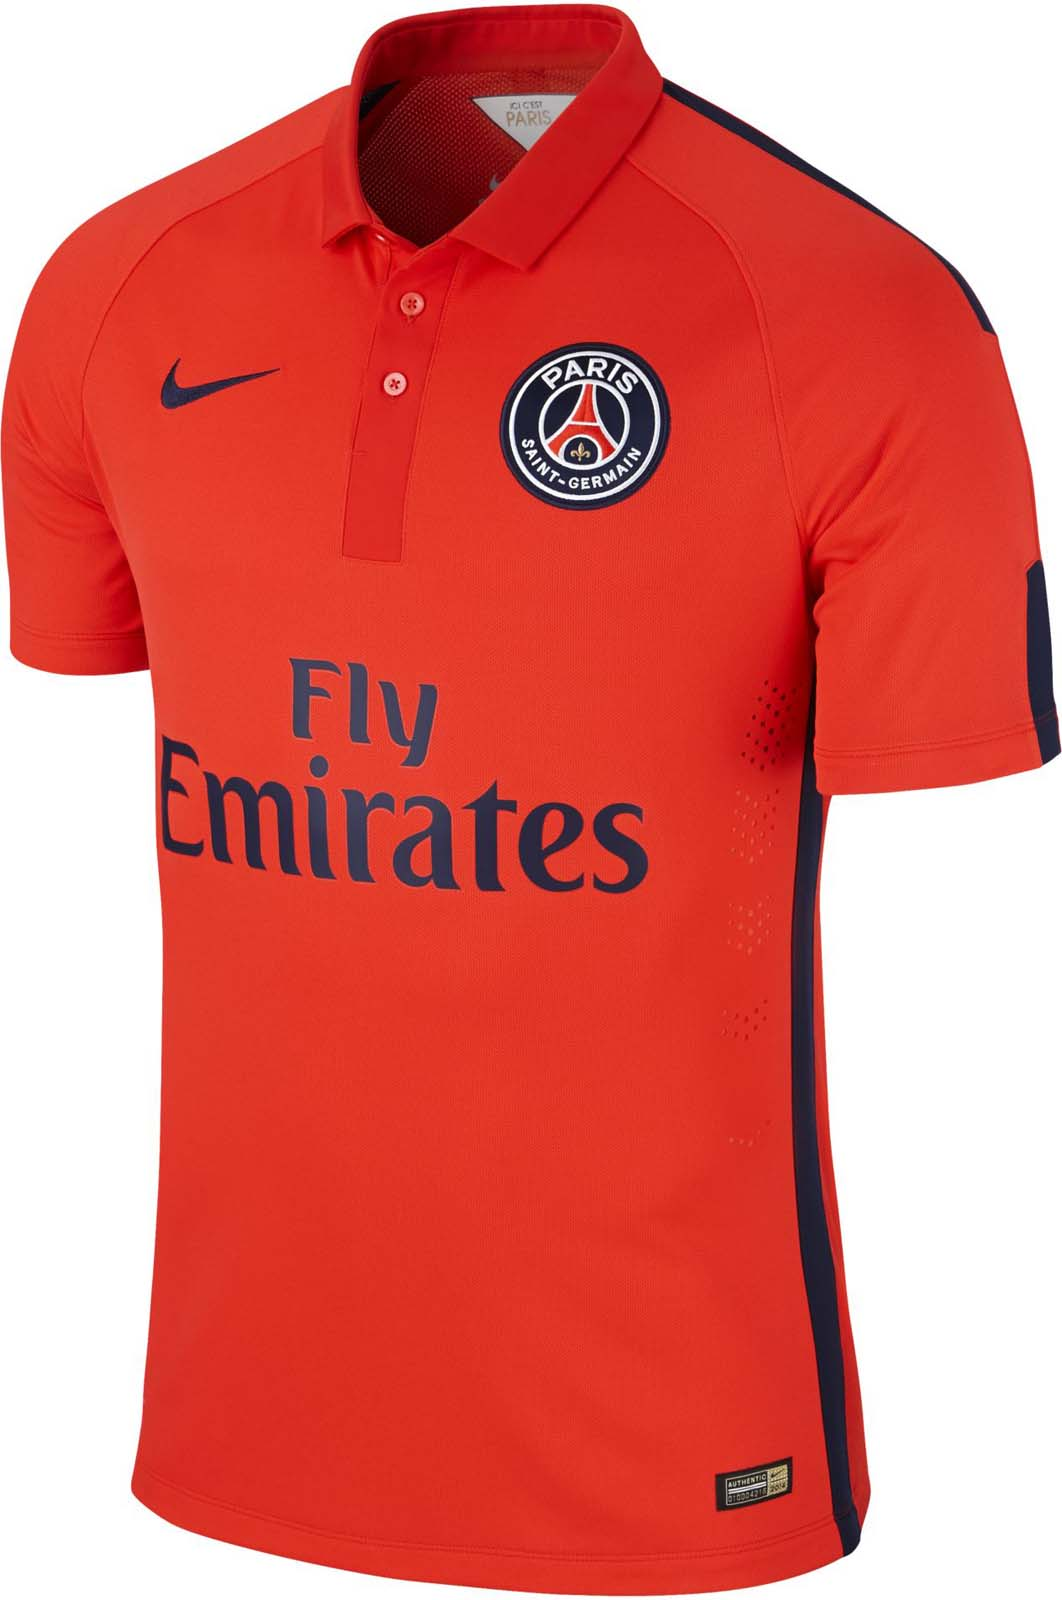 maillots de football paris saint germain. Black Bedroom Furniture Sets. Home Design Ideas